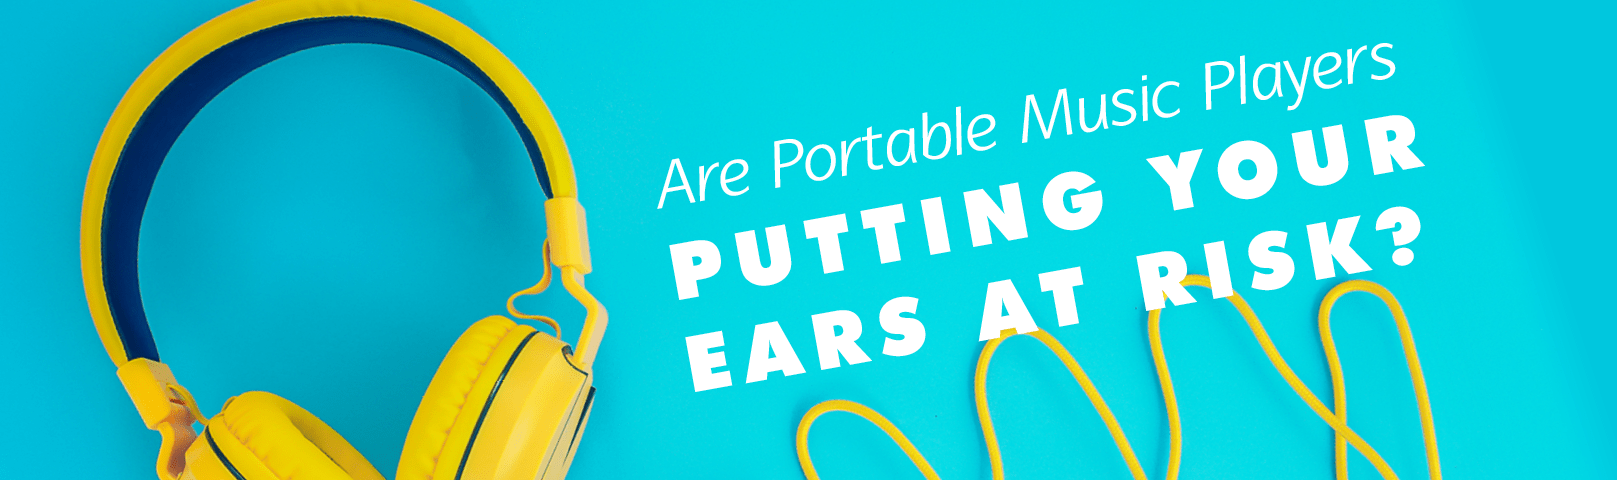 Are Portable Music Players Putting Your Ears at Risk?